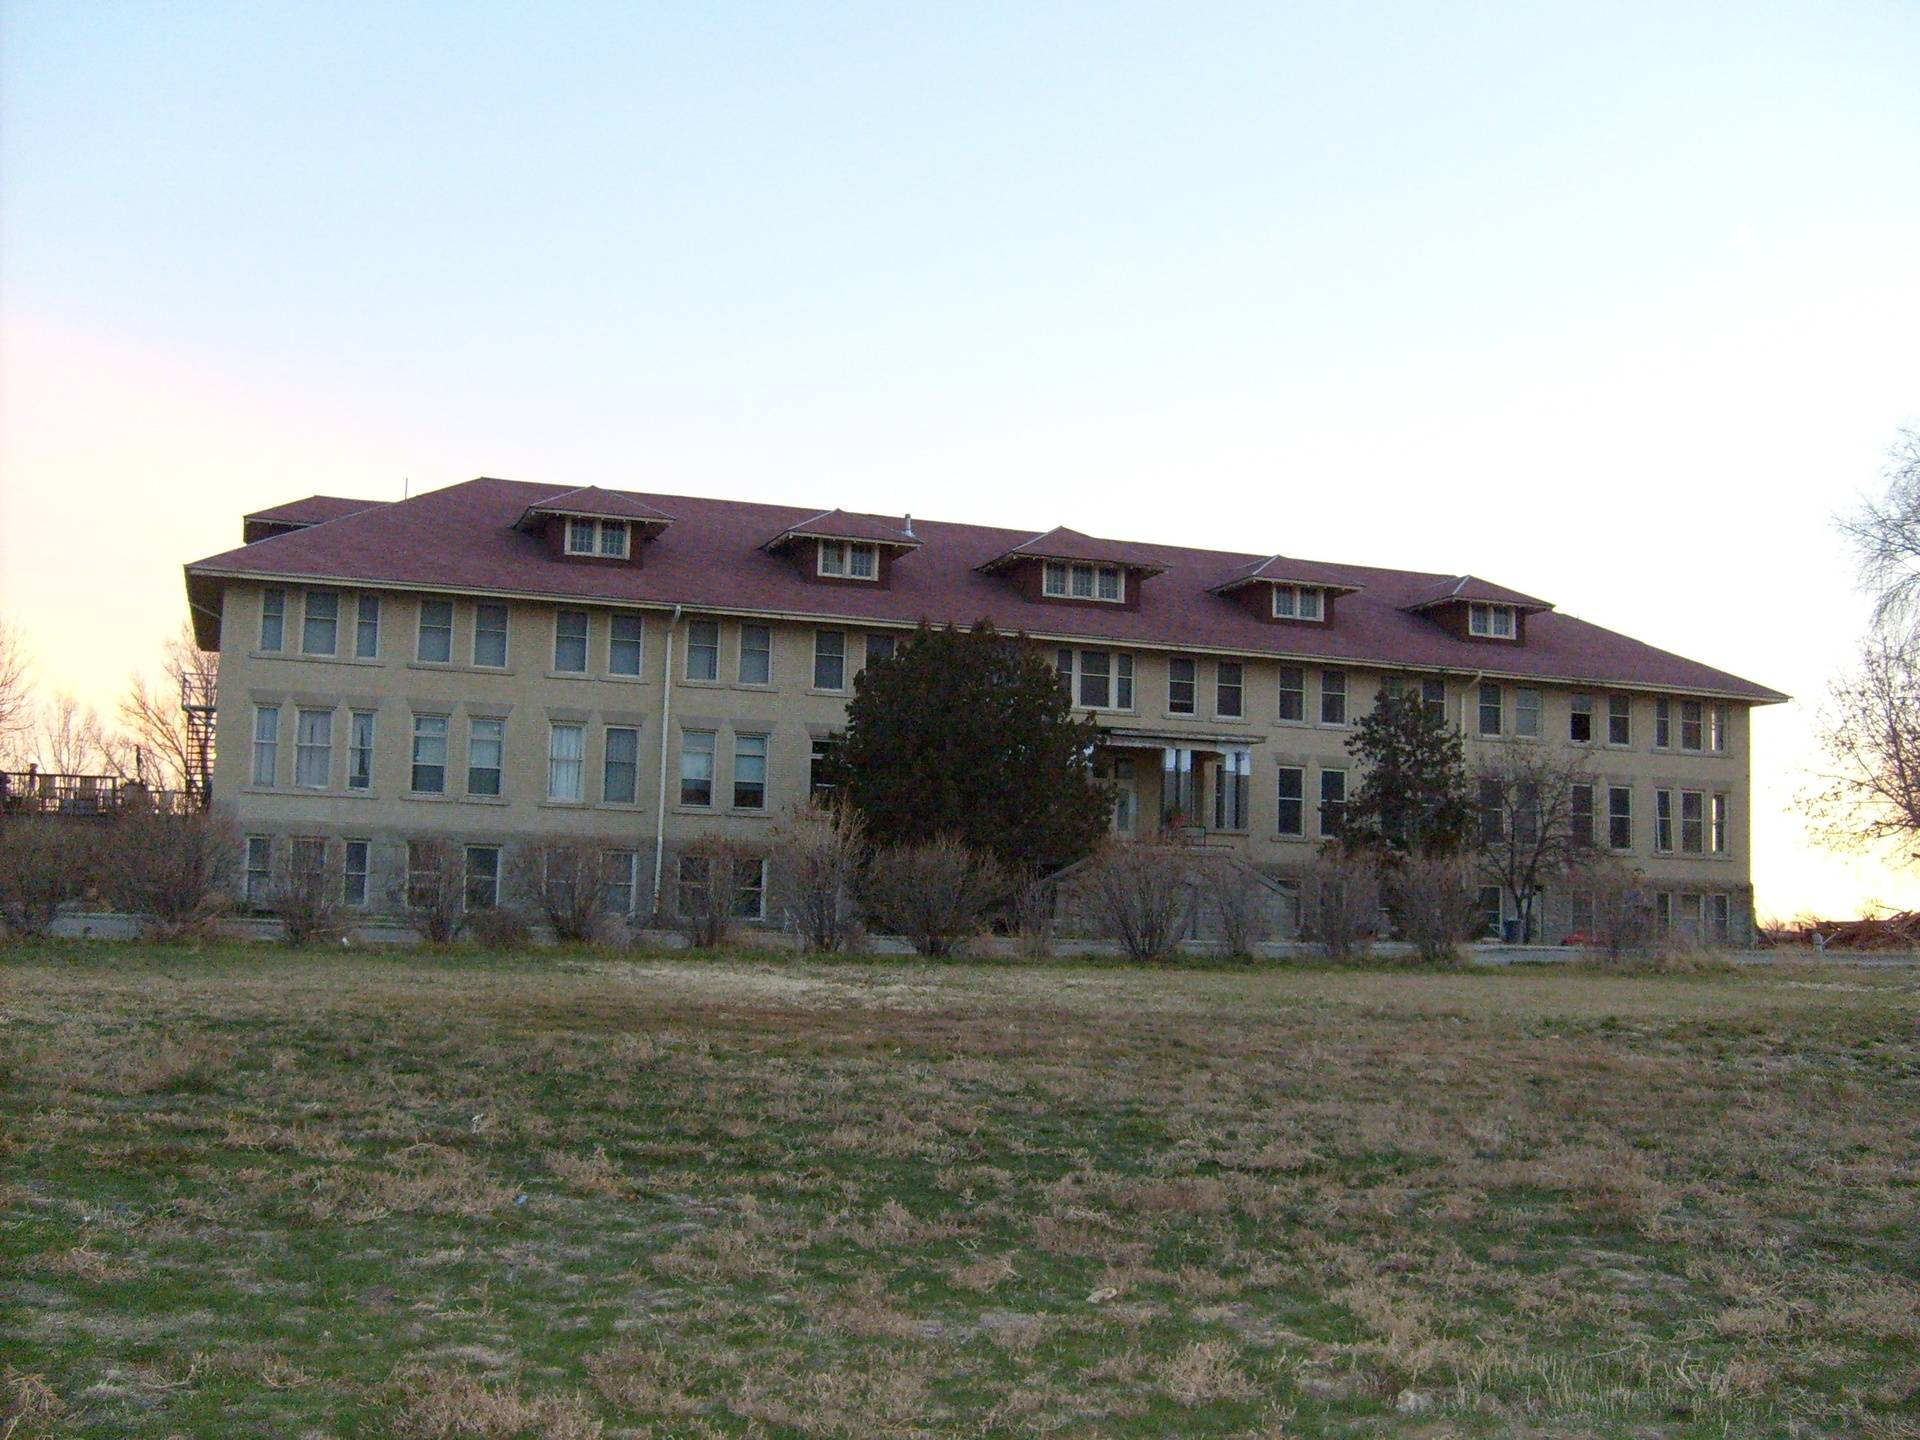 Gooding University Inn and Resort, 301 University Ave., Gooding, Idaho, 83330, United States